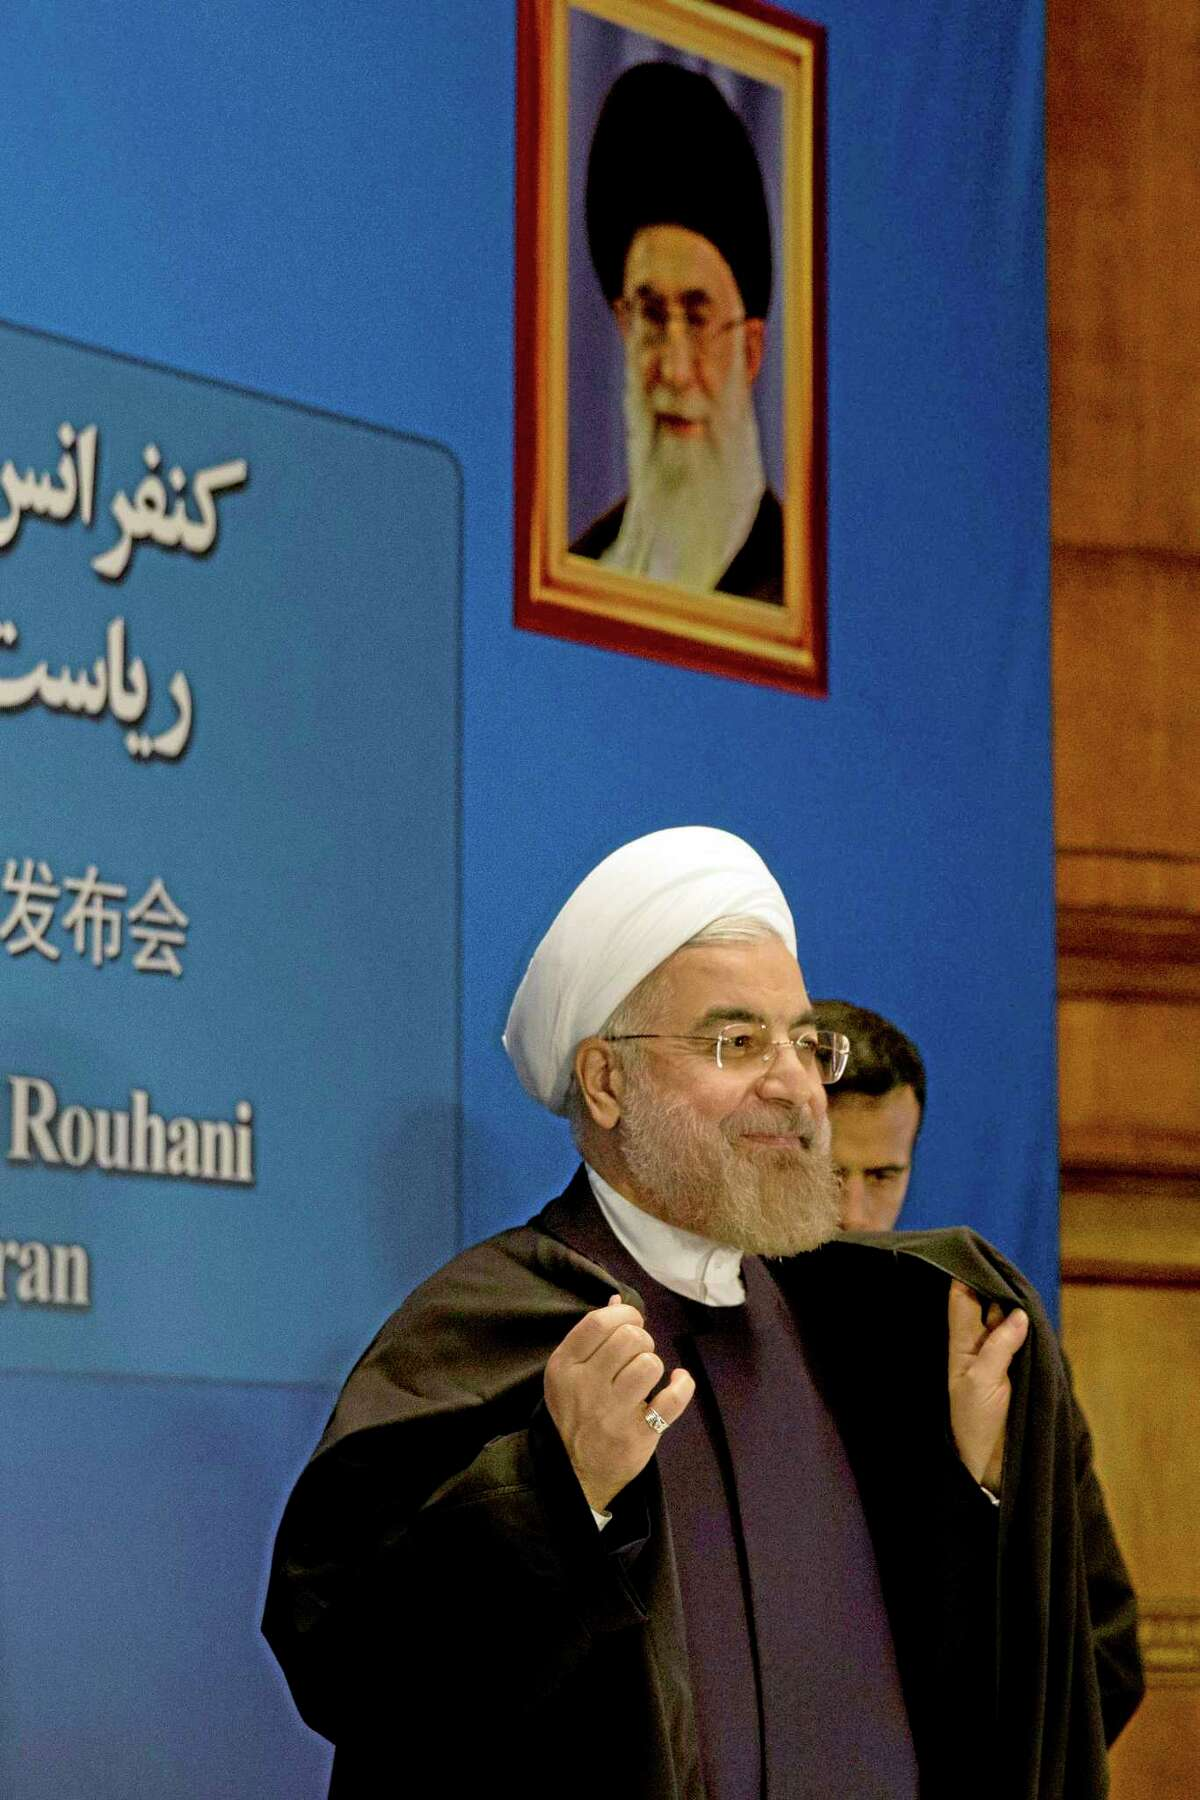 Iranian President Hassan Rouhani prepares to leave after a press conference near a portrait of Iranian Supreme Leader Ayatollah Ali Khamenei at a hotel in Shanghai, China, Thursday, May 22, 2014. Rouhani says an agreement on curbing its nuclear program is